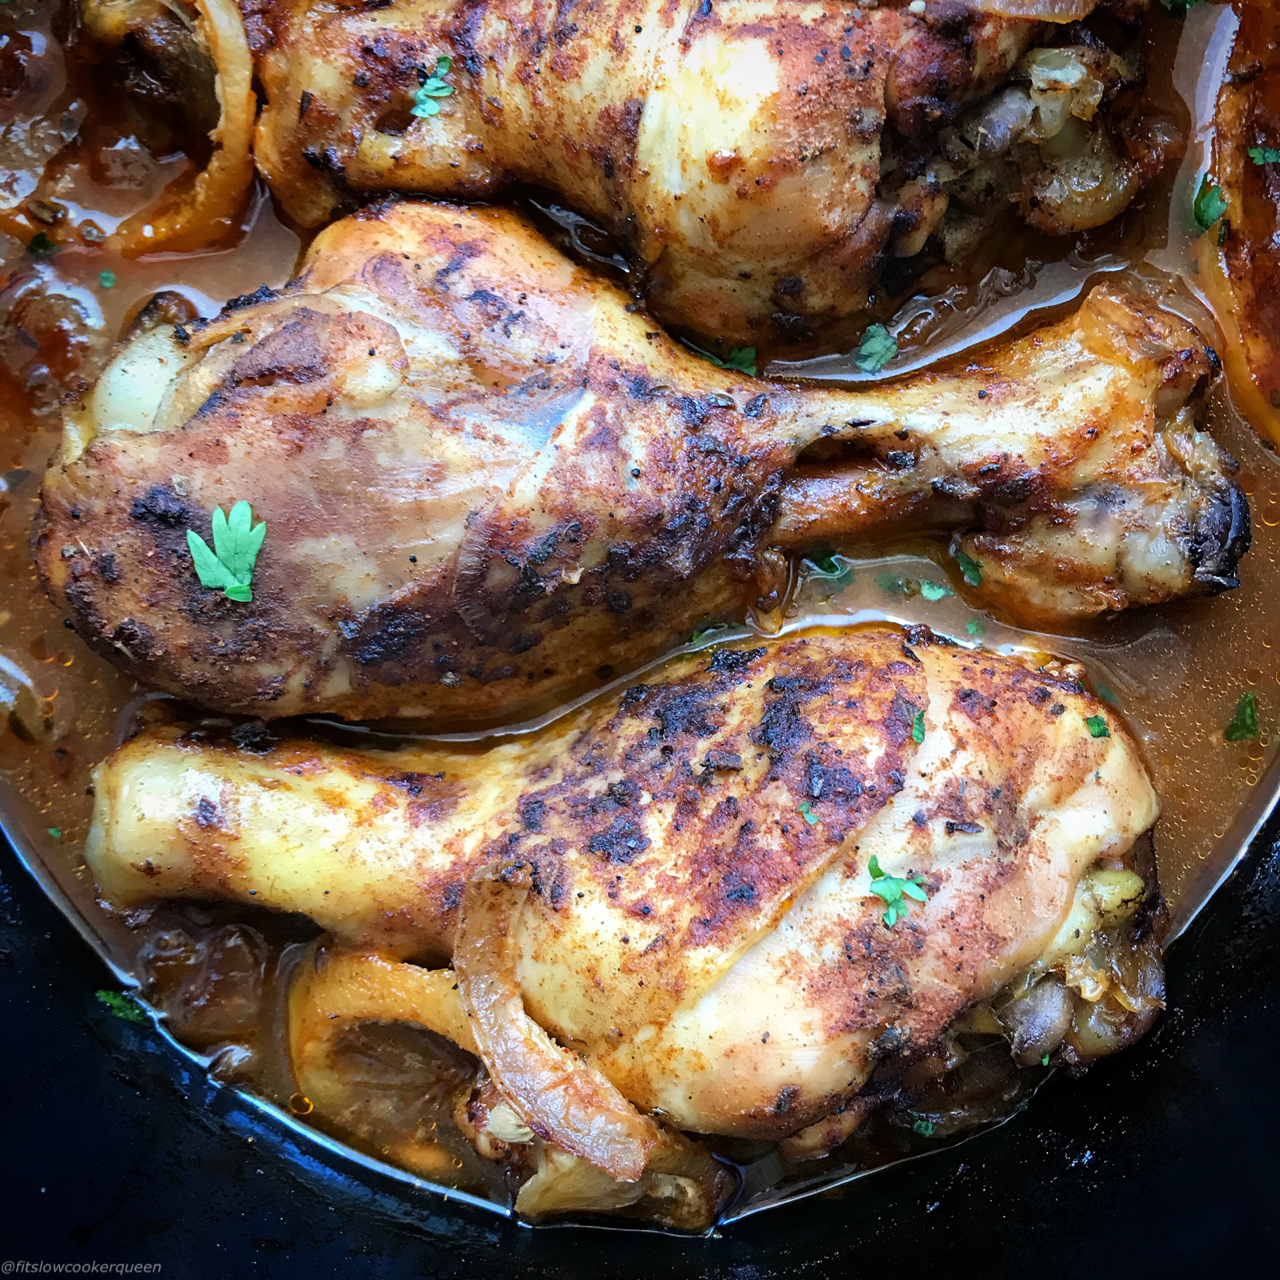 Piri-piri chicken is a perfect dish for the slow cooker. A homemade spicy marinade cooks with chicken in this healthy version of an Portuguese classic.